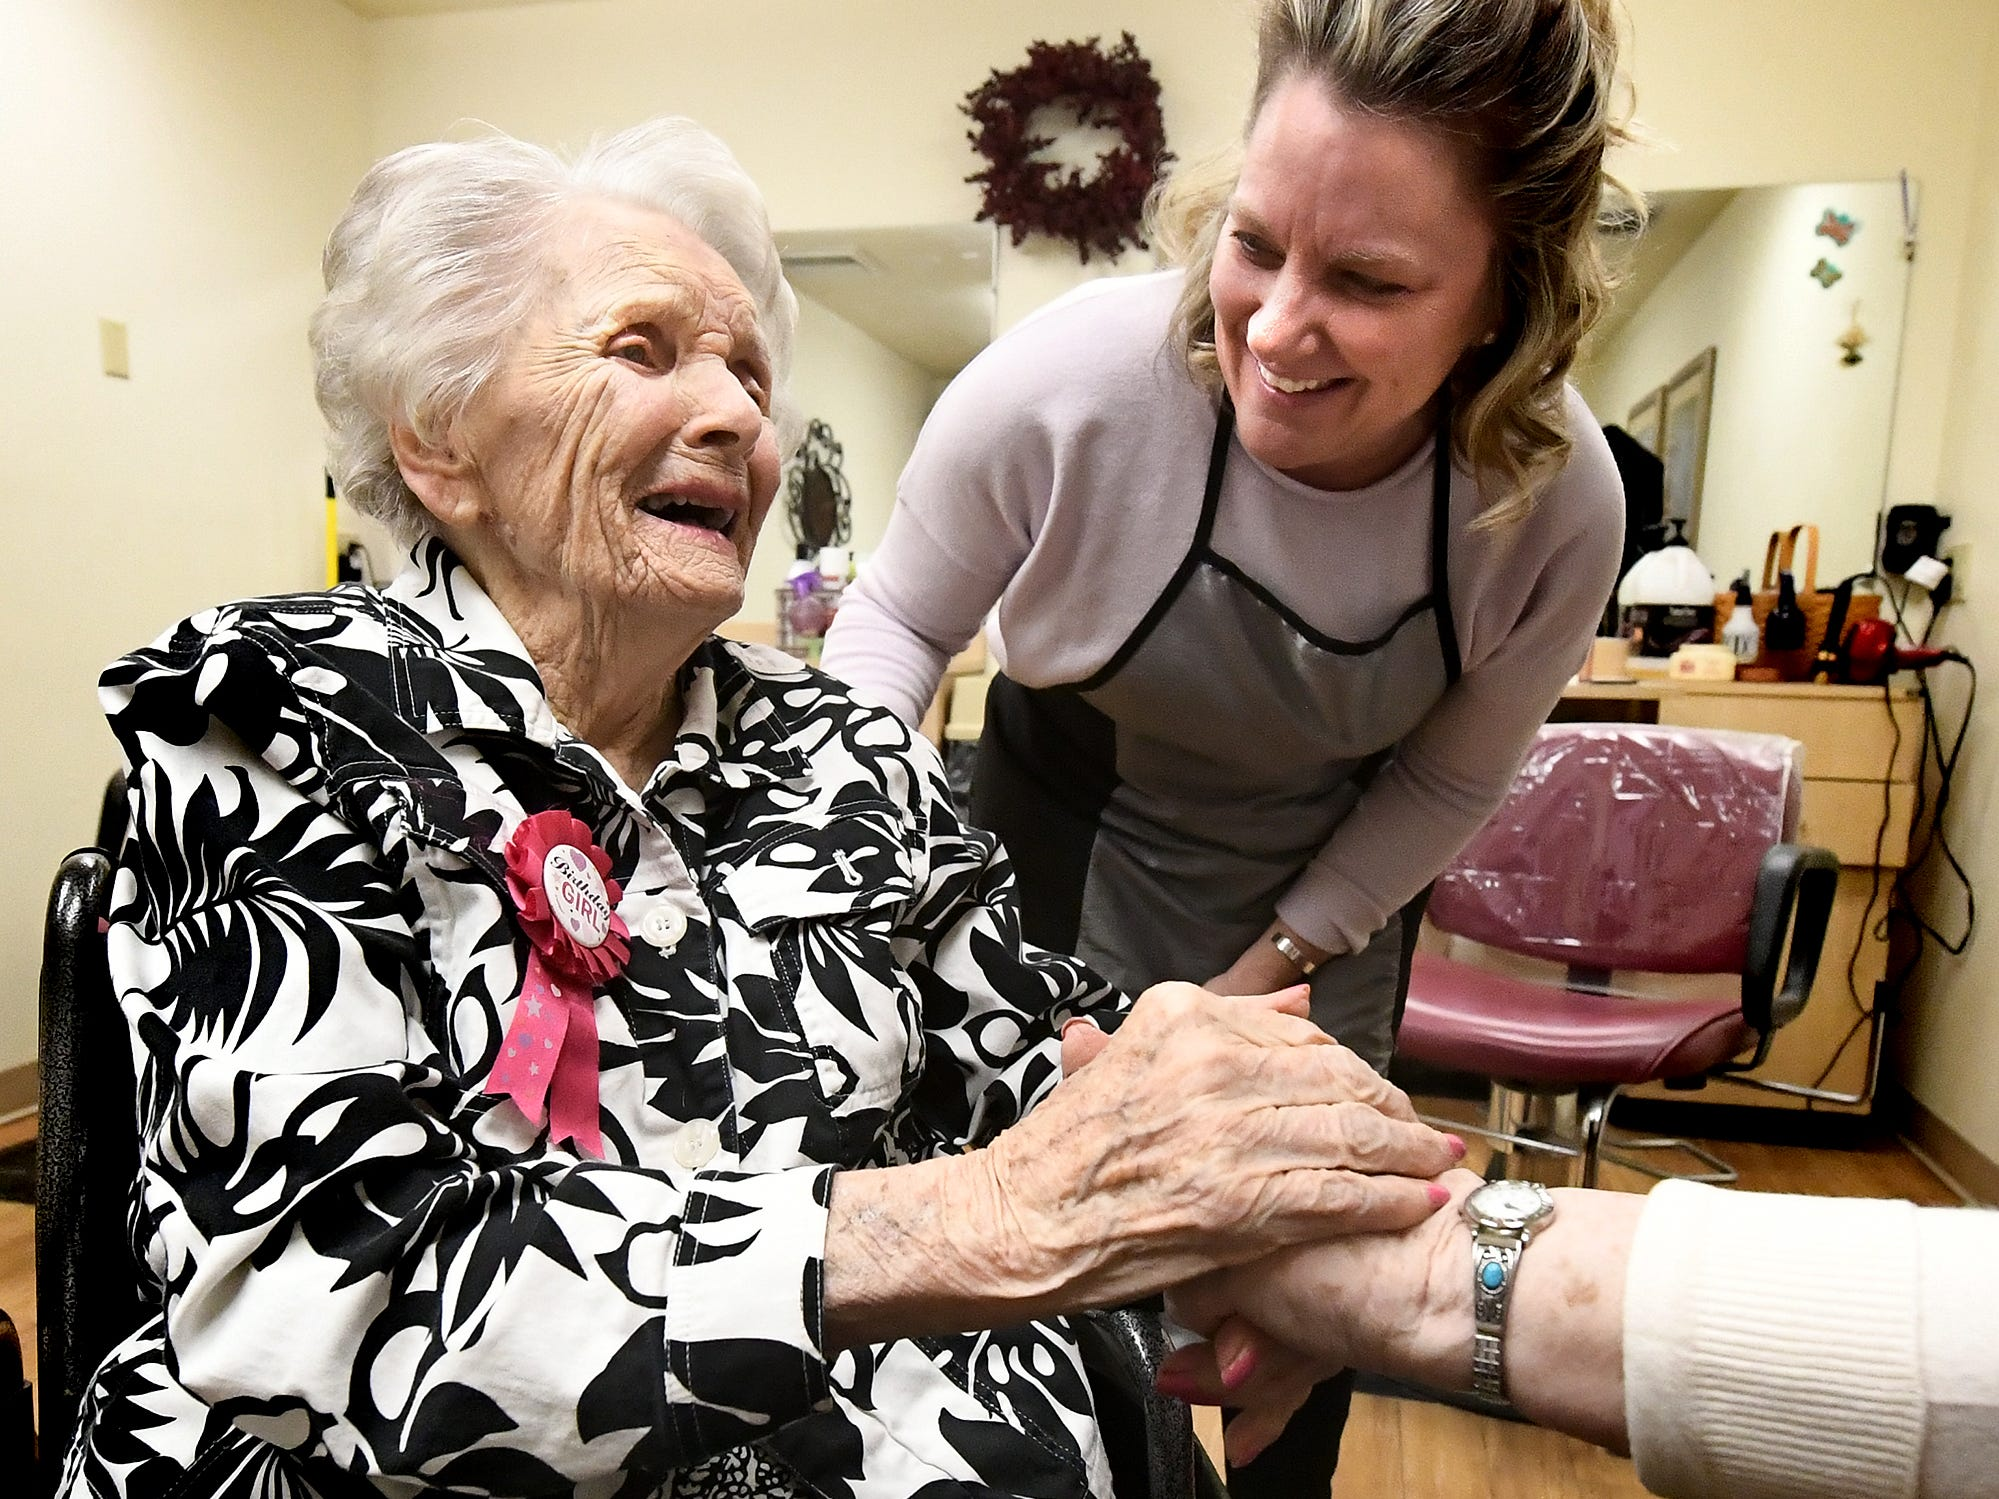 Hairdresser Vicki Zarilla watches as Ruth Kohler gets a birthday wish from a fellow resident, right, after Ruth got her hair done by in preparation of celebrating her 104th birthday at Senior Commons at Powder Mill where she is a resident Friday, Feb. 1, 2019. According to Commons staff, she is the oldest resident to have lived there. Bill Kalina photo